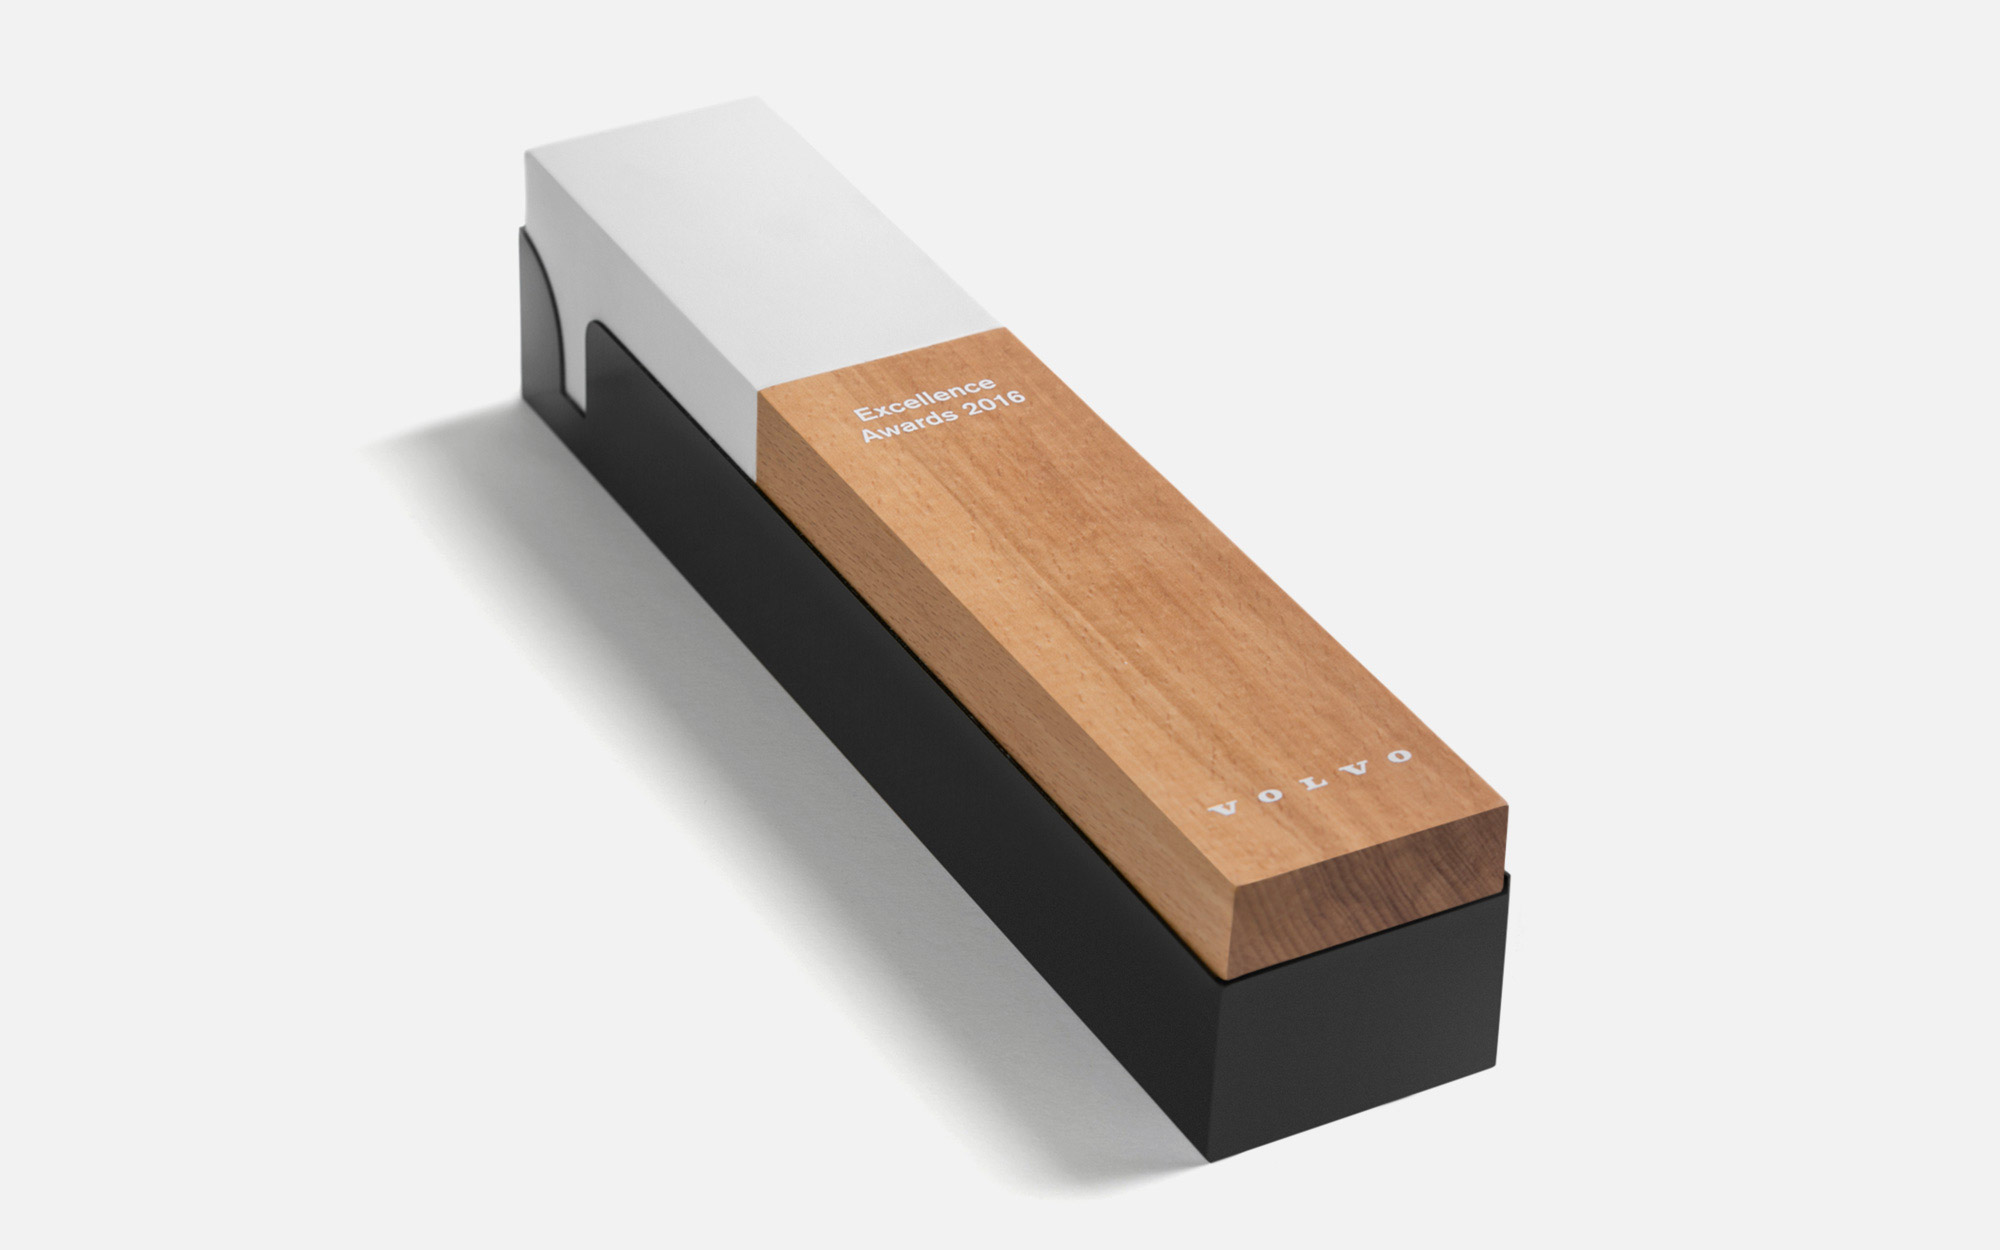 Volvo Excellence Awards Trophy By Semiotik Design Agency